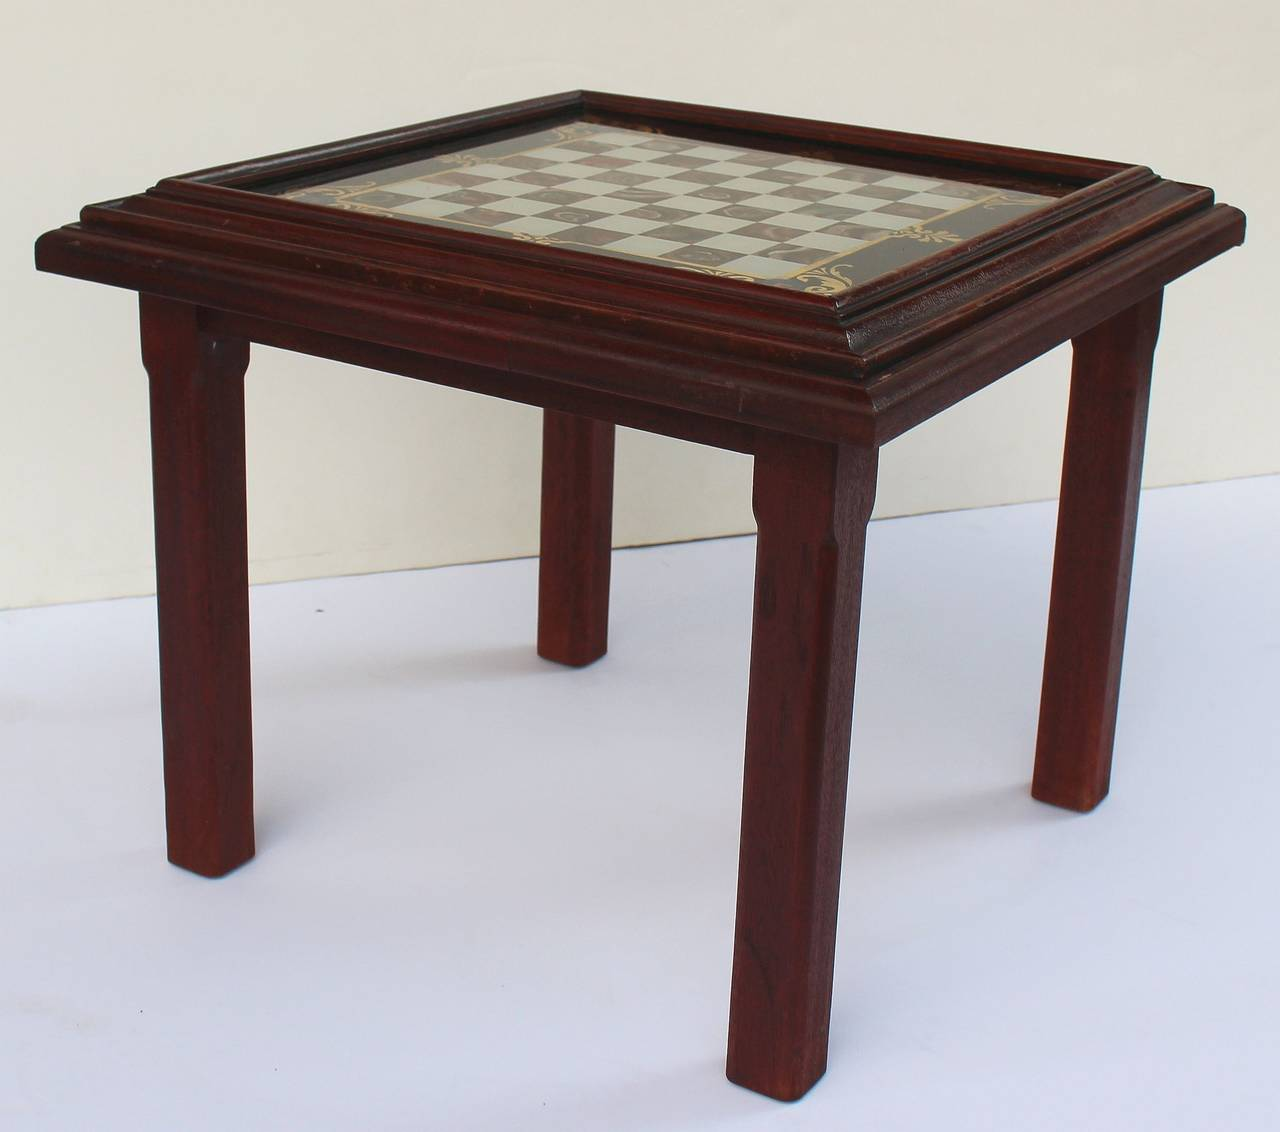 English Low Cocktail Or Coffee Table With Chess Board Top For Sale At 1stdibs